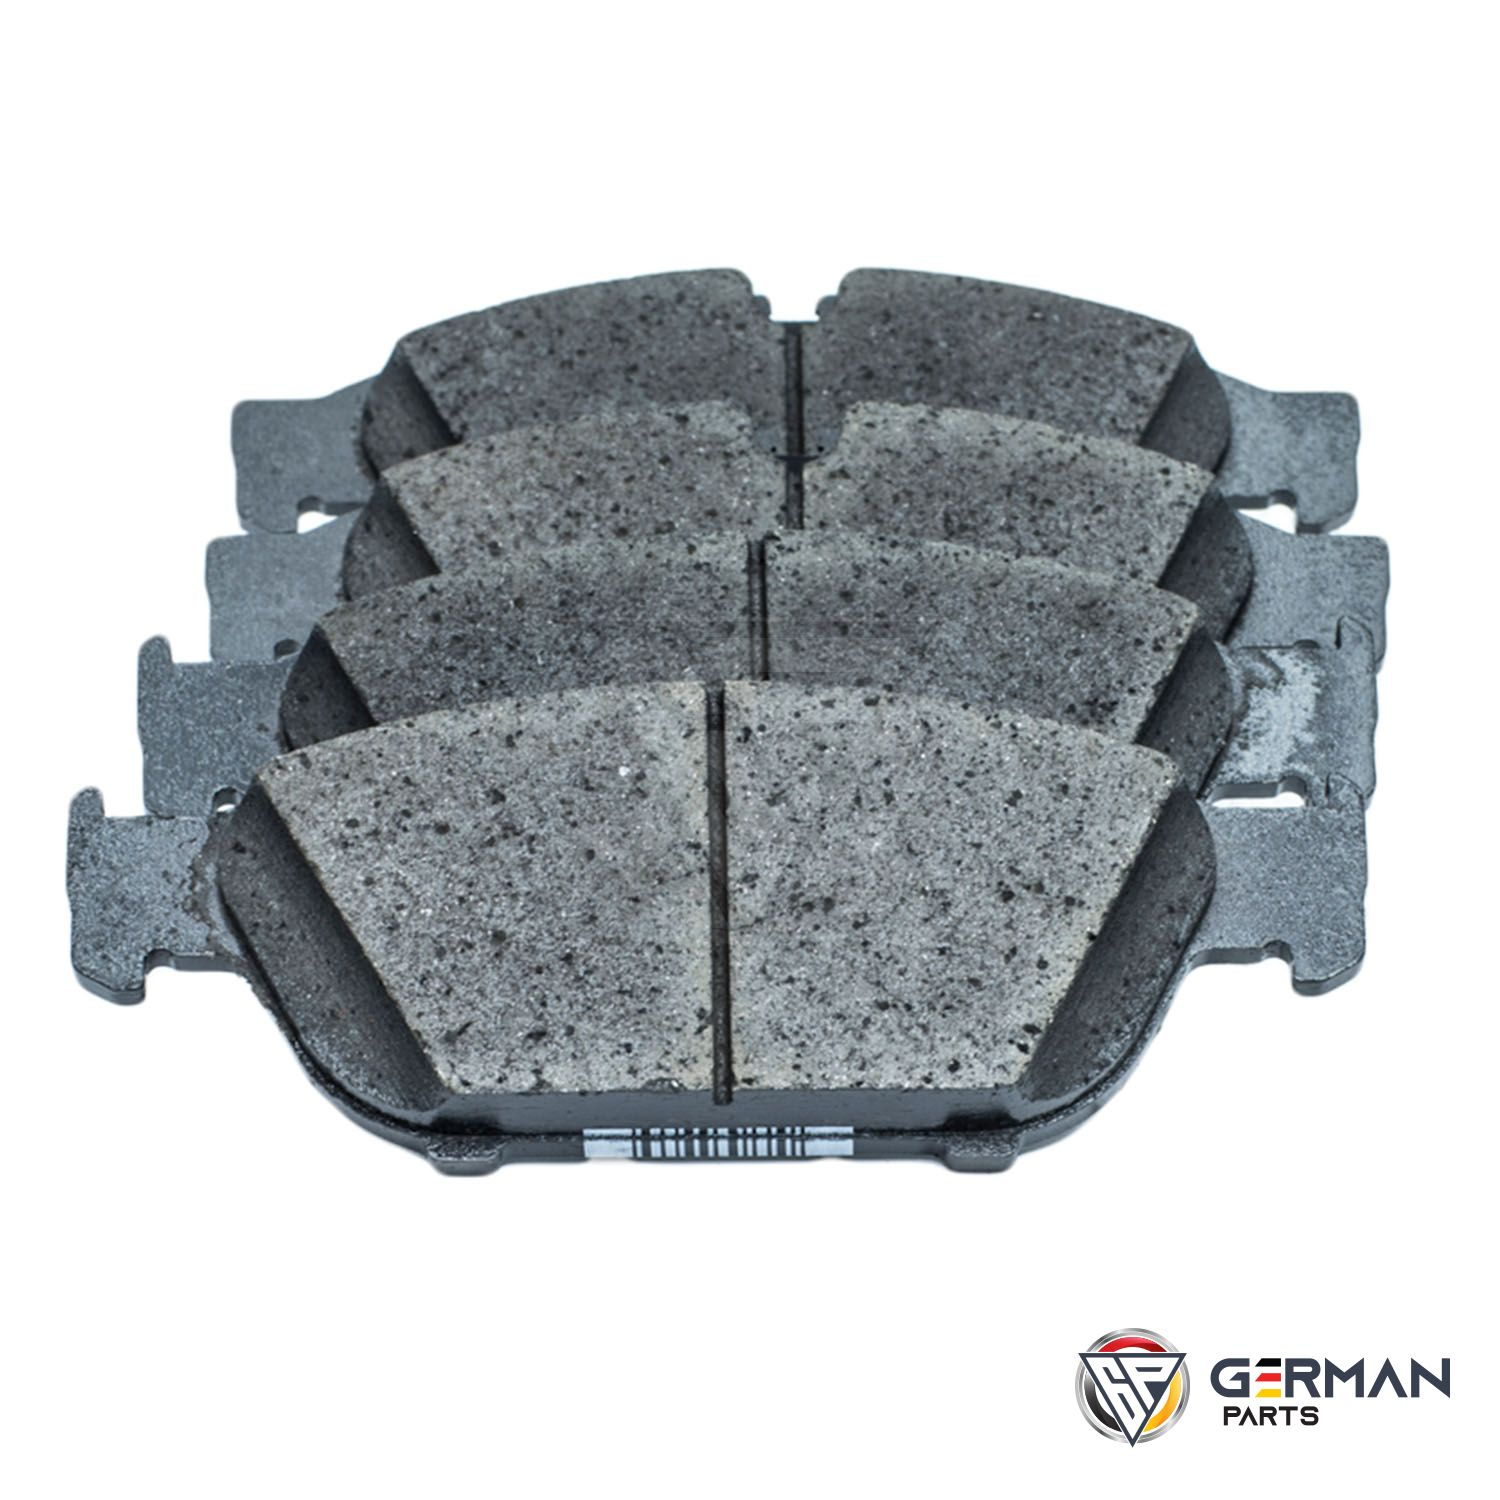 Buy Genuine Audi/Volkswagen Front Brake Pad Set 4G0698151M - German Parts